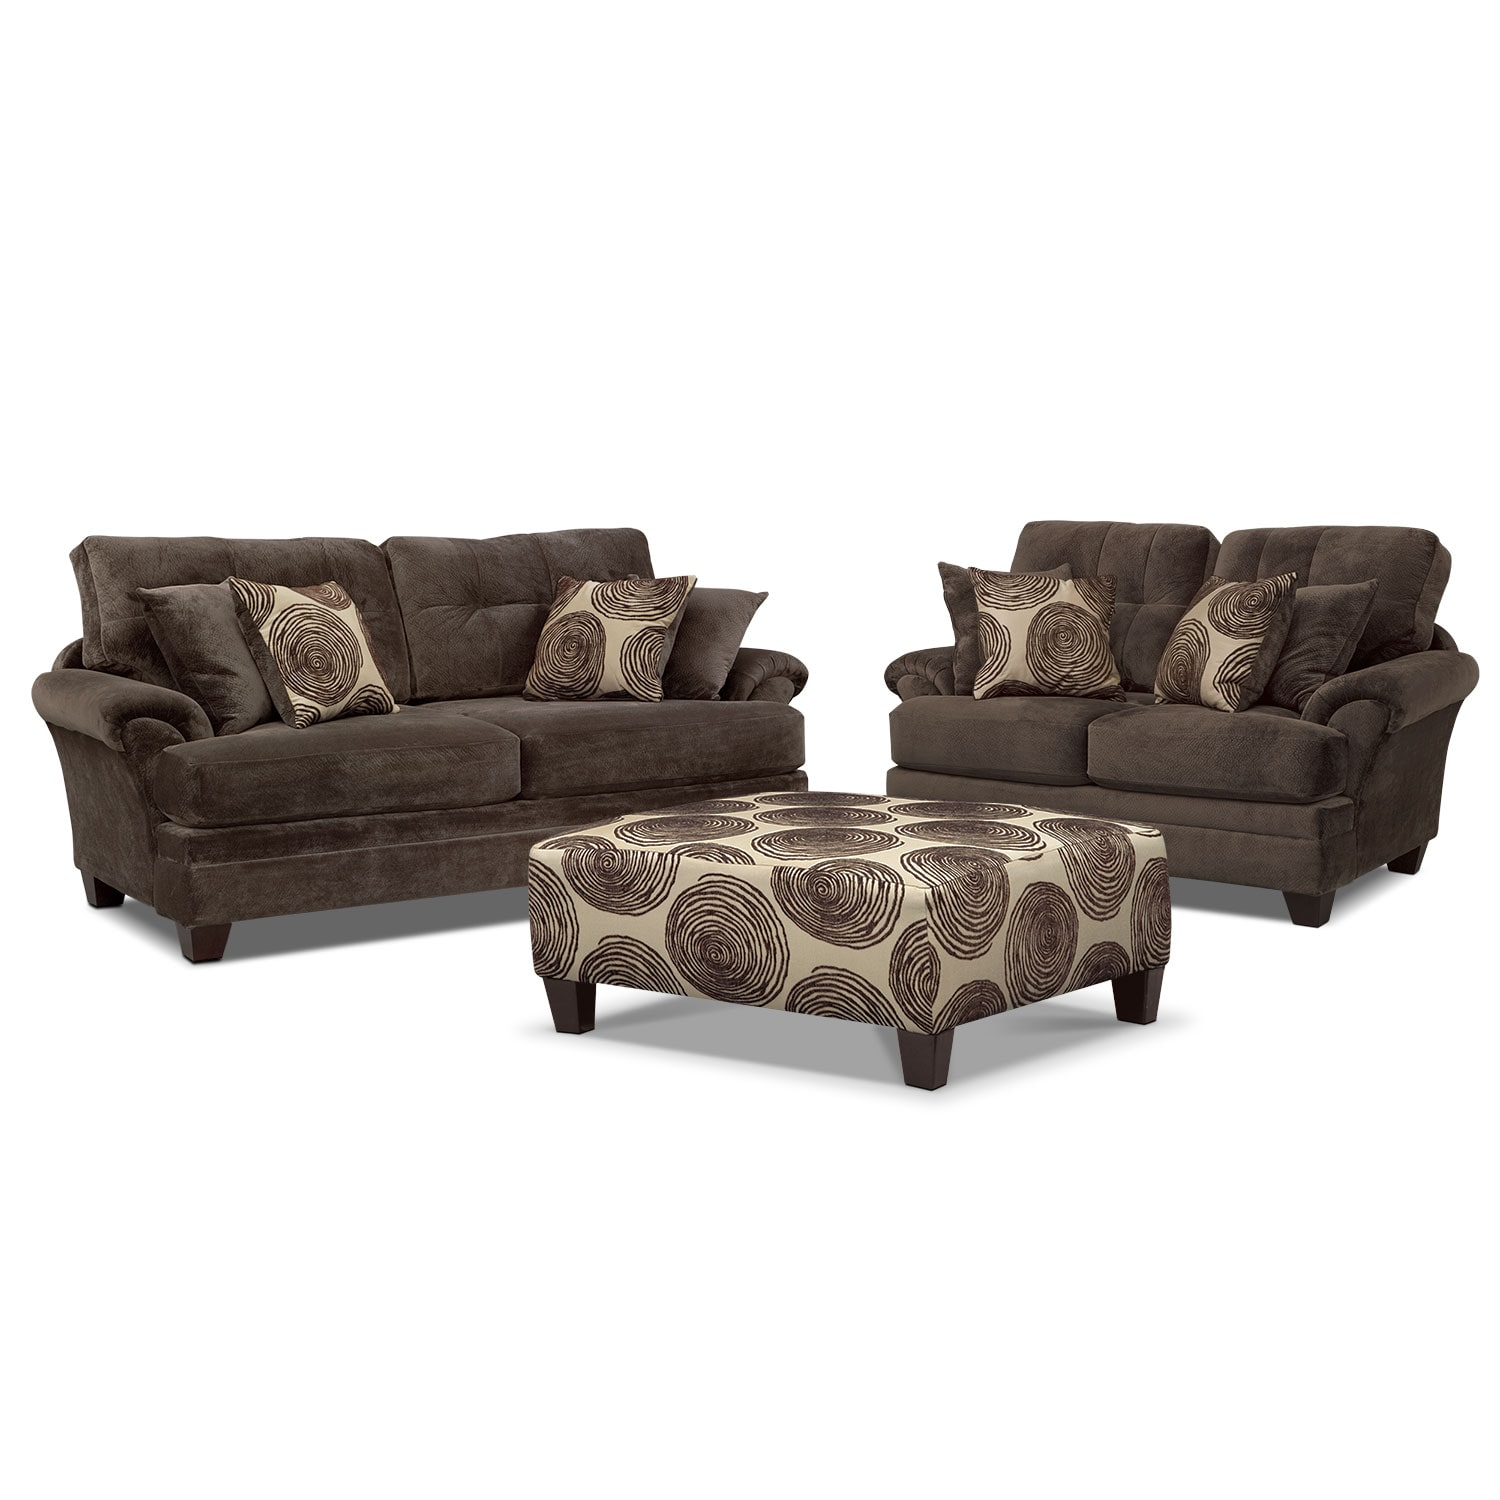 Exceptionnel Living Room Furniture   Cordelle Sofa, Loveseat And Cocktail Ottoman Set    Chocolate